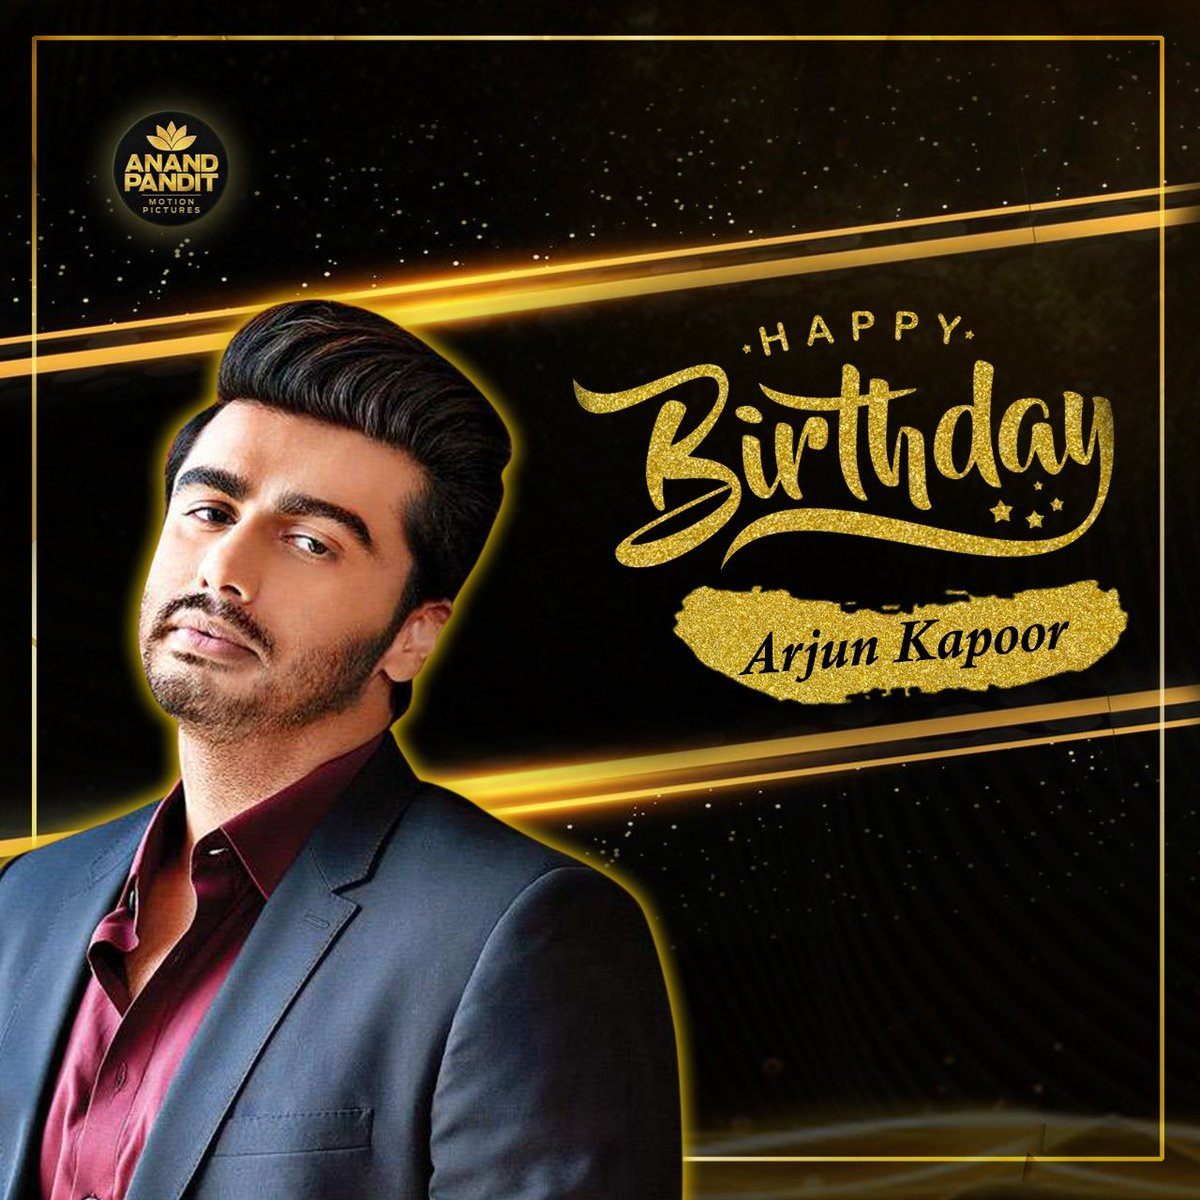 Happiest birthday Arjun Kapoor. You are not only an amazing actor, brother and son, but you are also a wonderful human being. Stay happy always! @arjunk26  . . #HappyBirthdayArjunKapoor #HappyBirthday https://t.co/jgGPn3WBXW